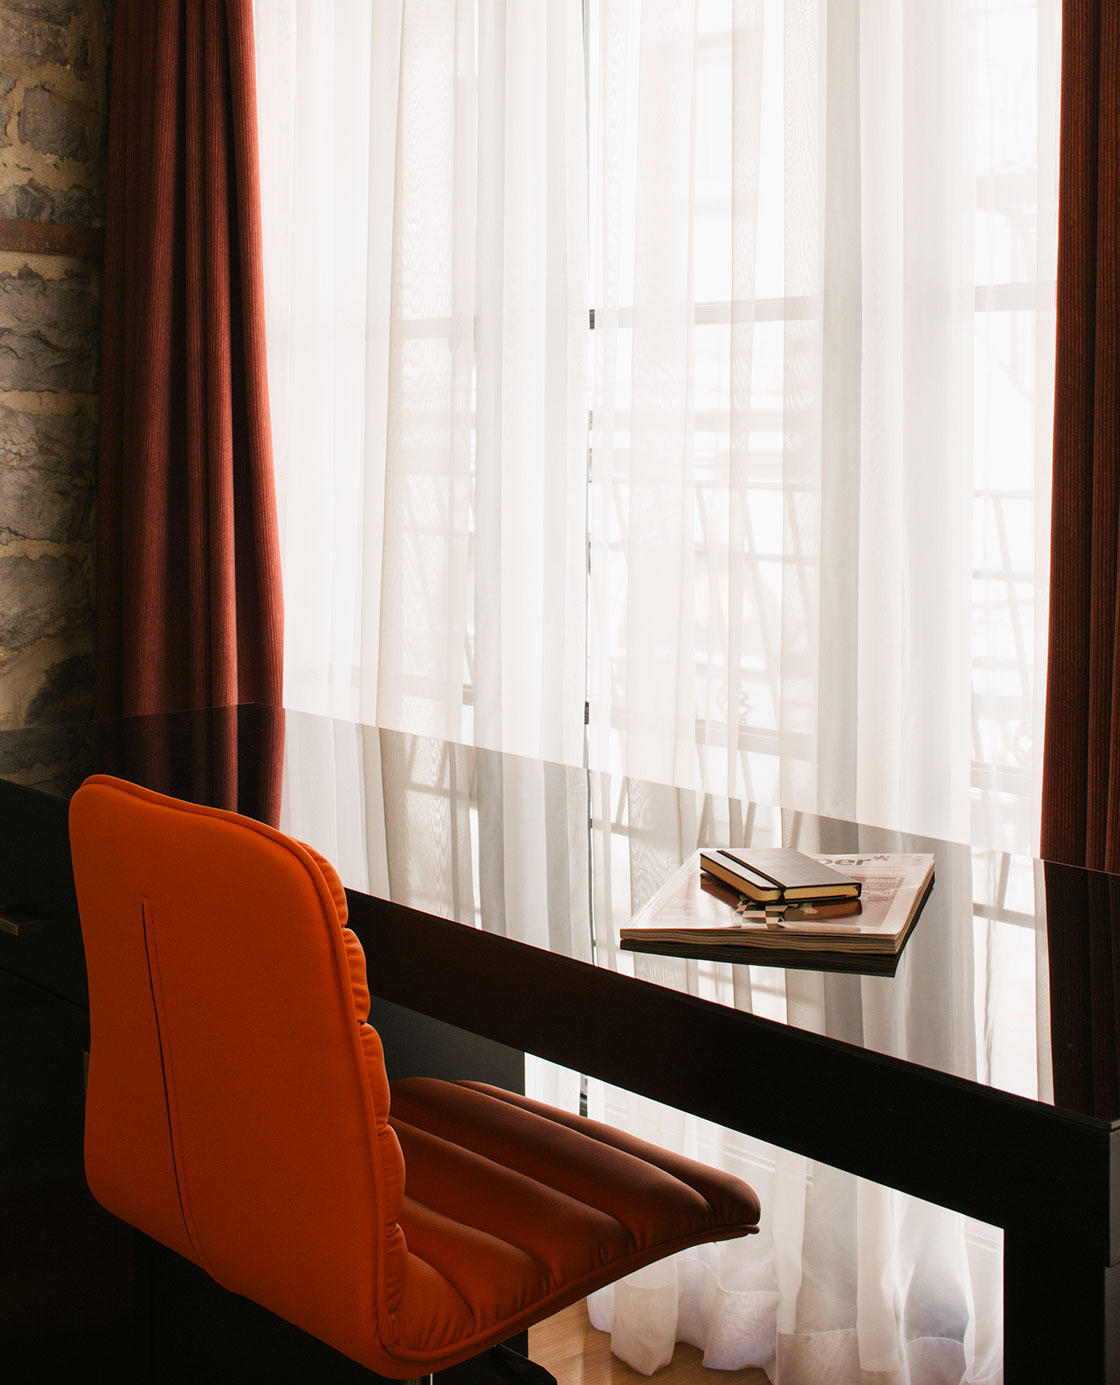 An orange chair and desk in front of a window